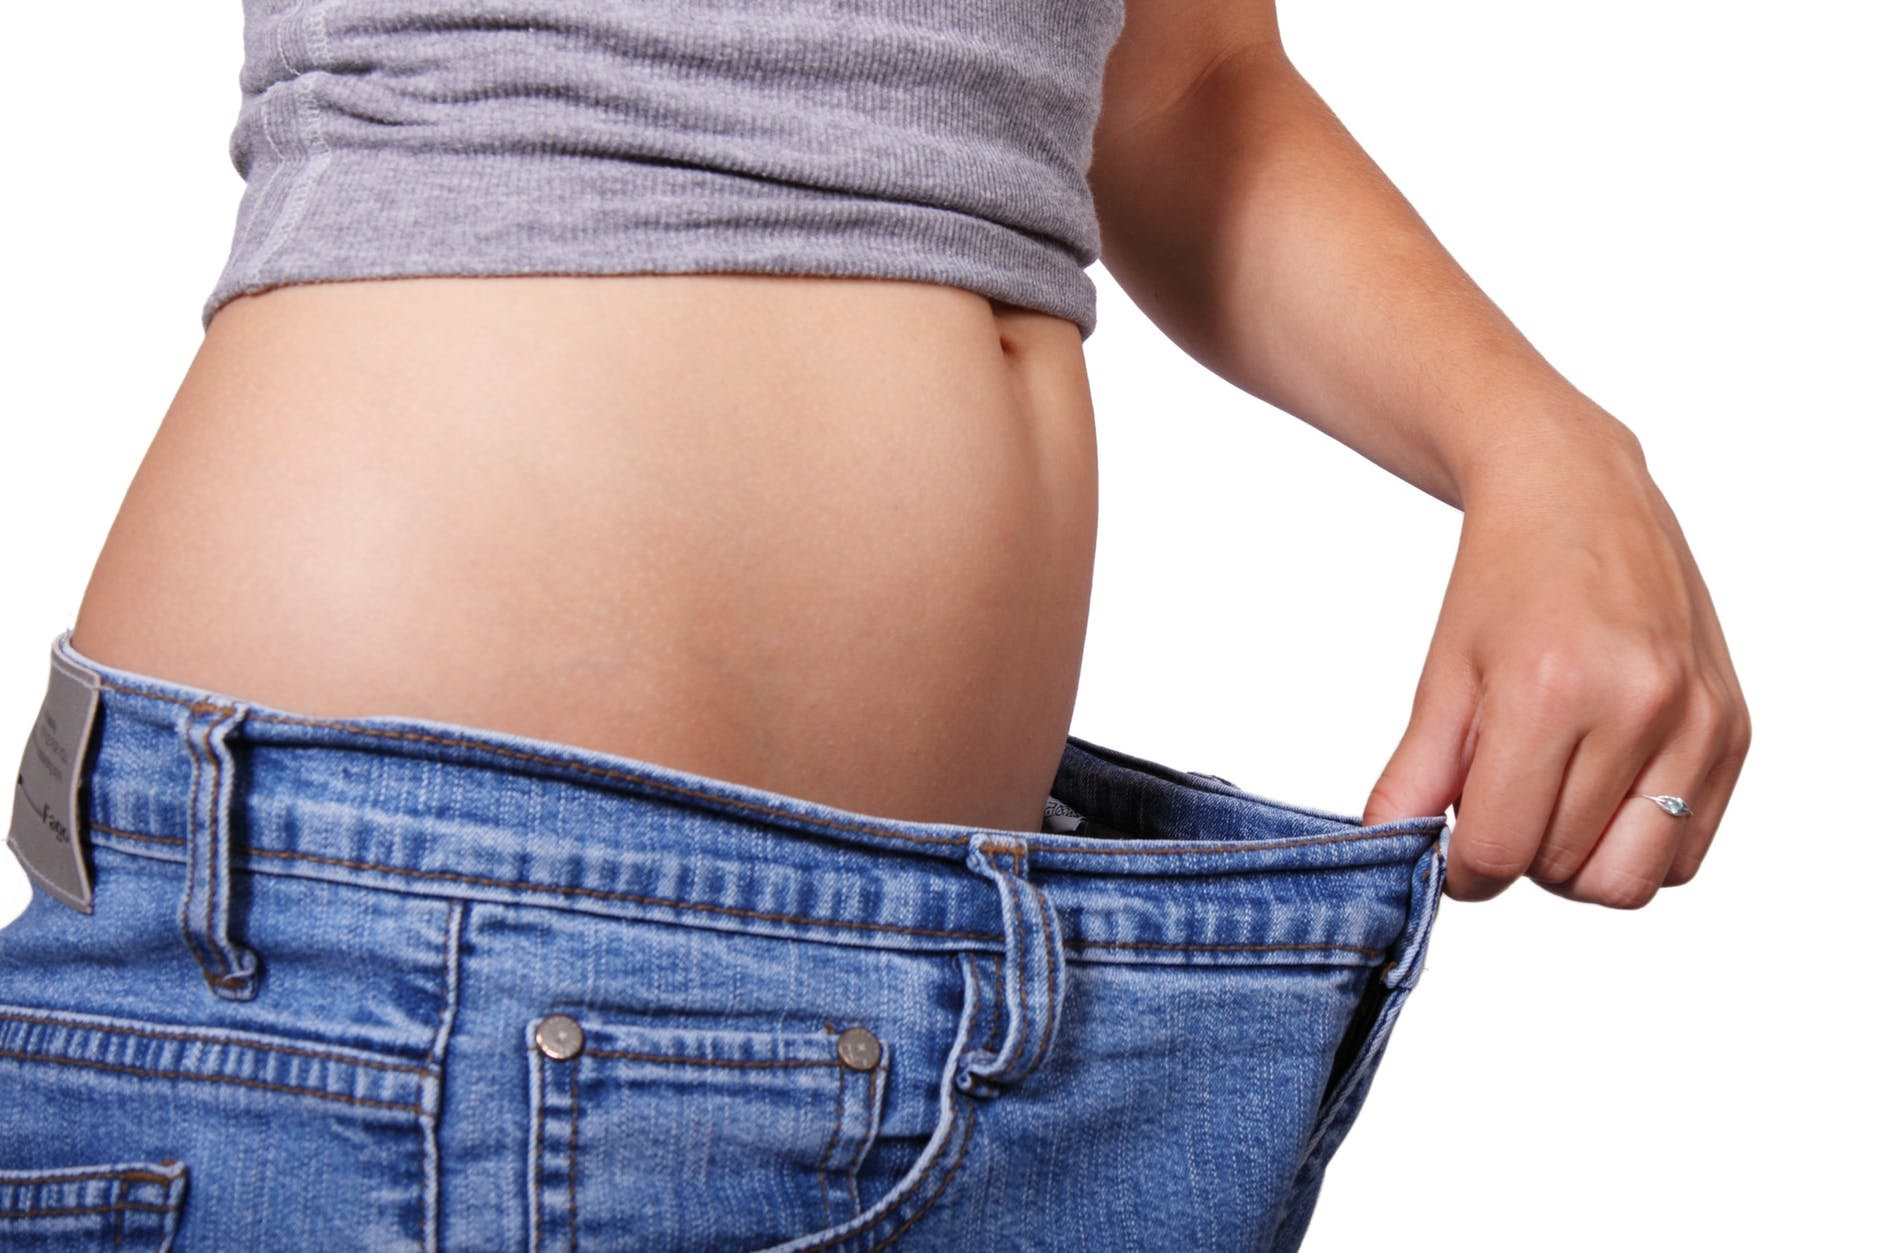 Cappuccino Fit Get Slim Attractive Body Easily Testabolan Cyp